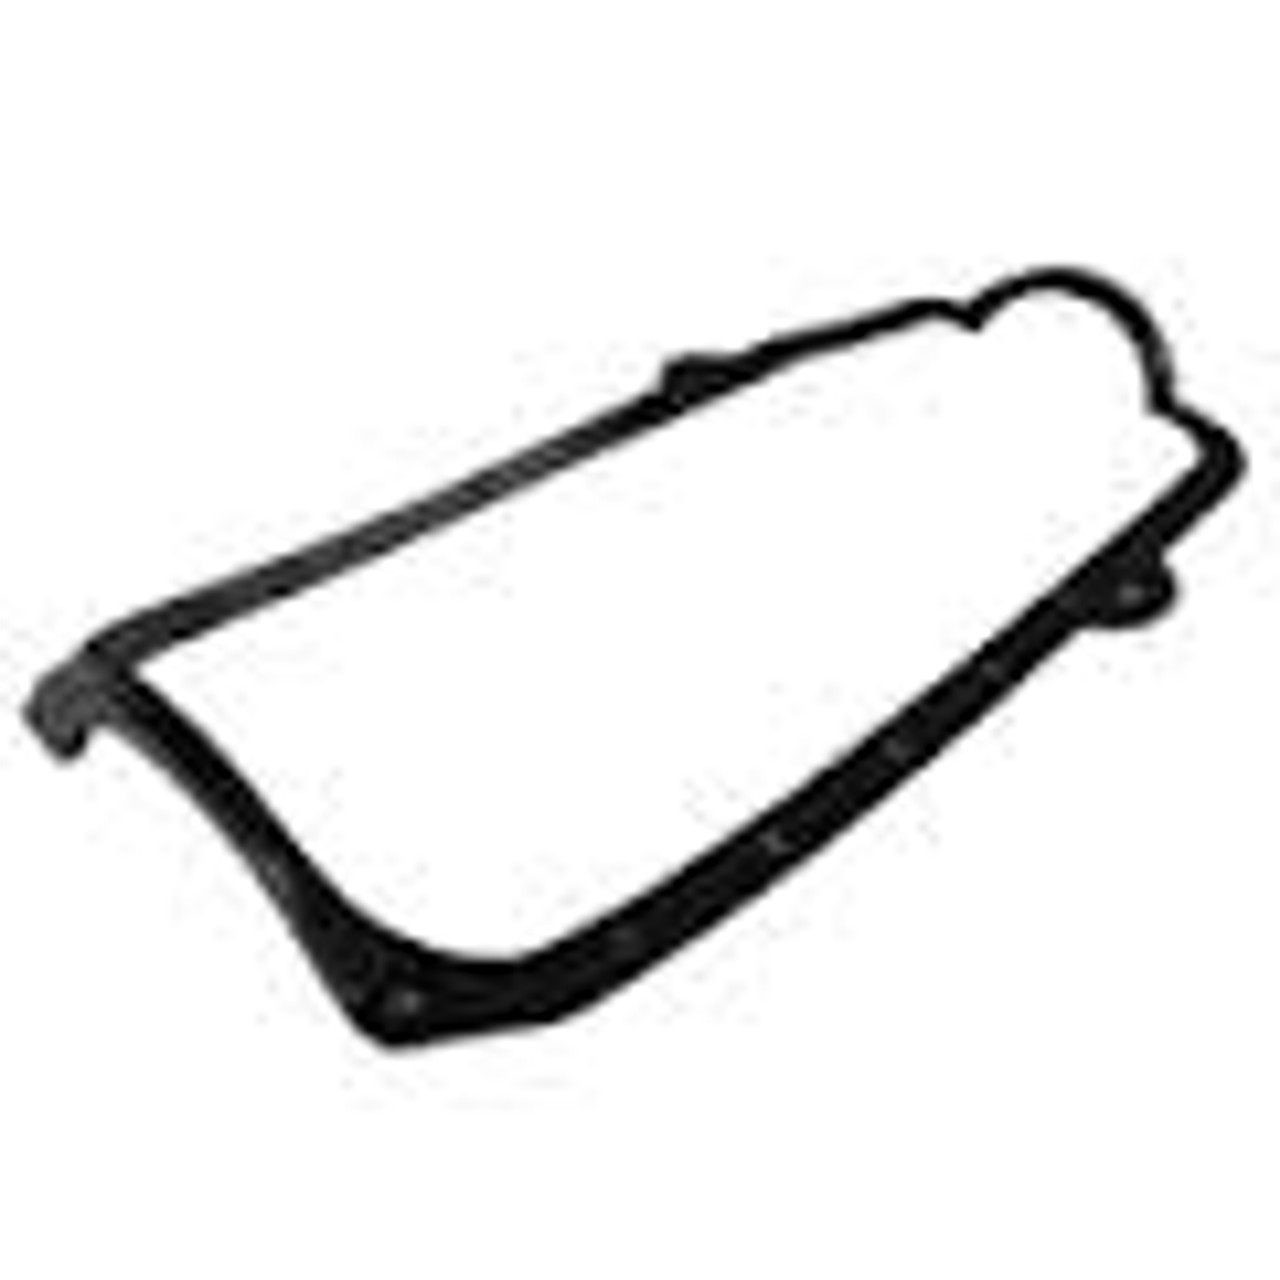 SBC 1pc Oil Pan Gasket Pre 86' Fits both driver and passenger side